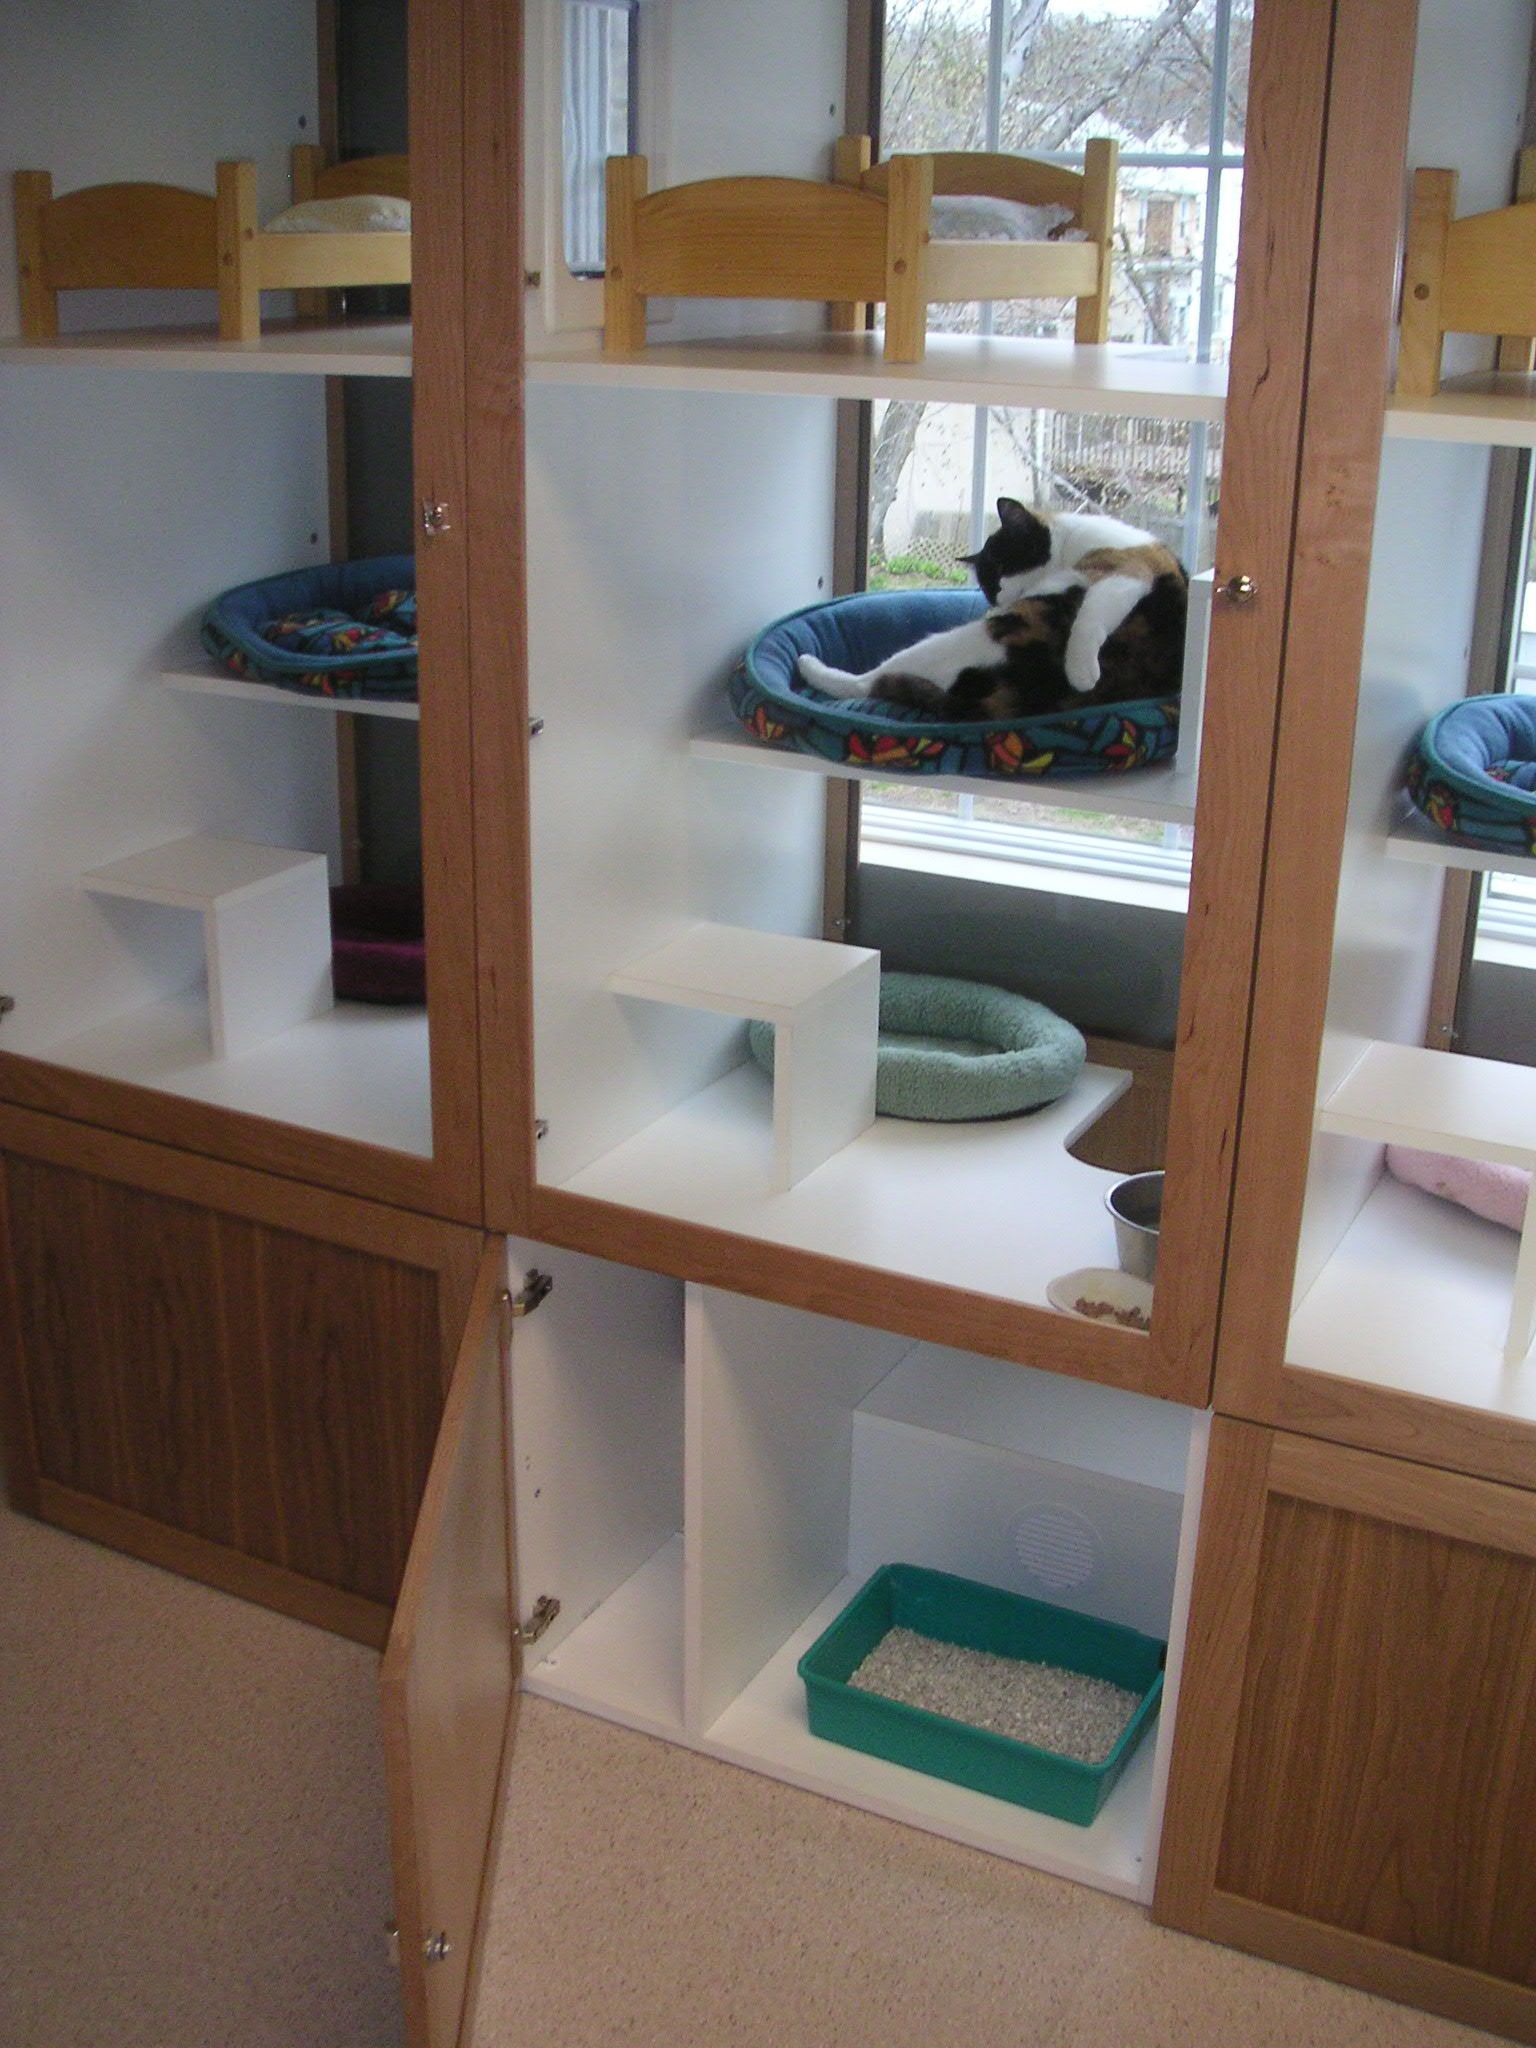 Litterbox Idea In Bottom Cabinet Convert This Idea For Outdoor Enclosure Cat Hotel Cat Kennel Dog Boarding Kennels